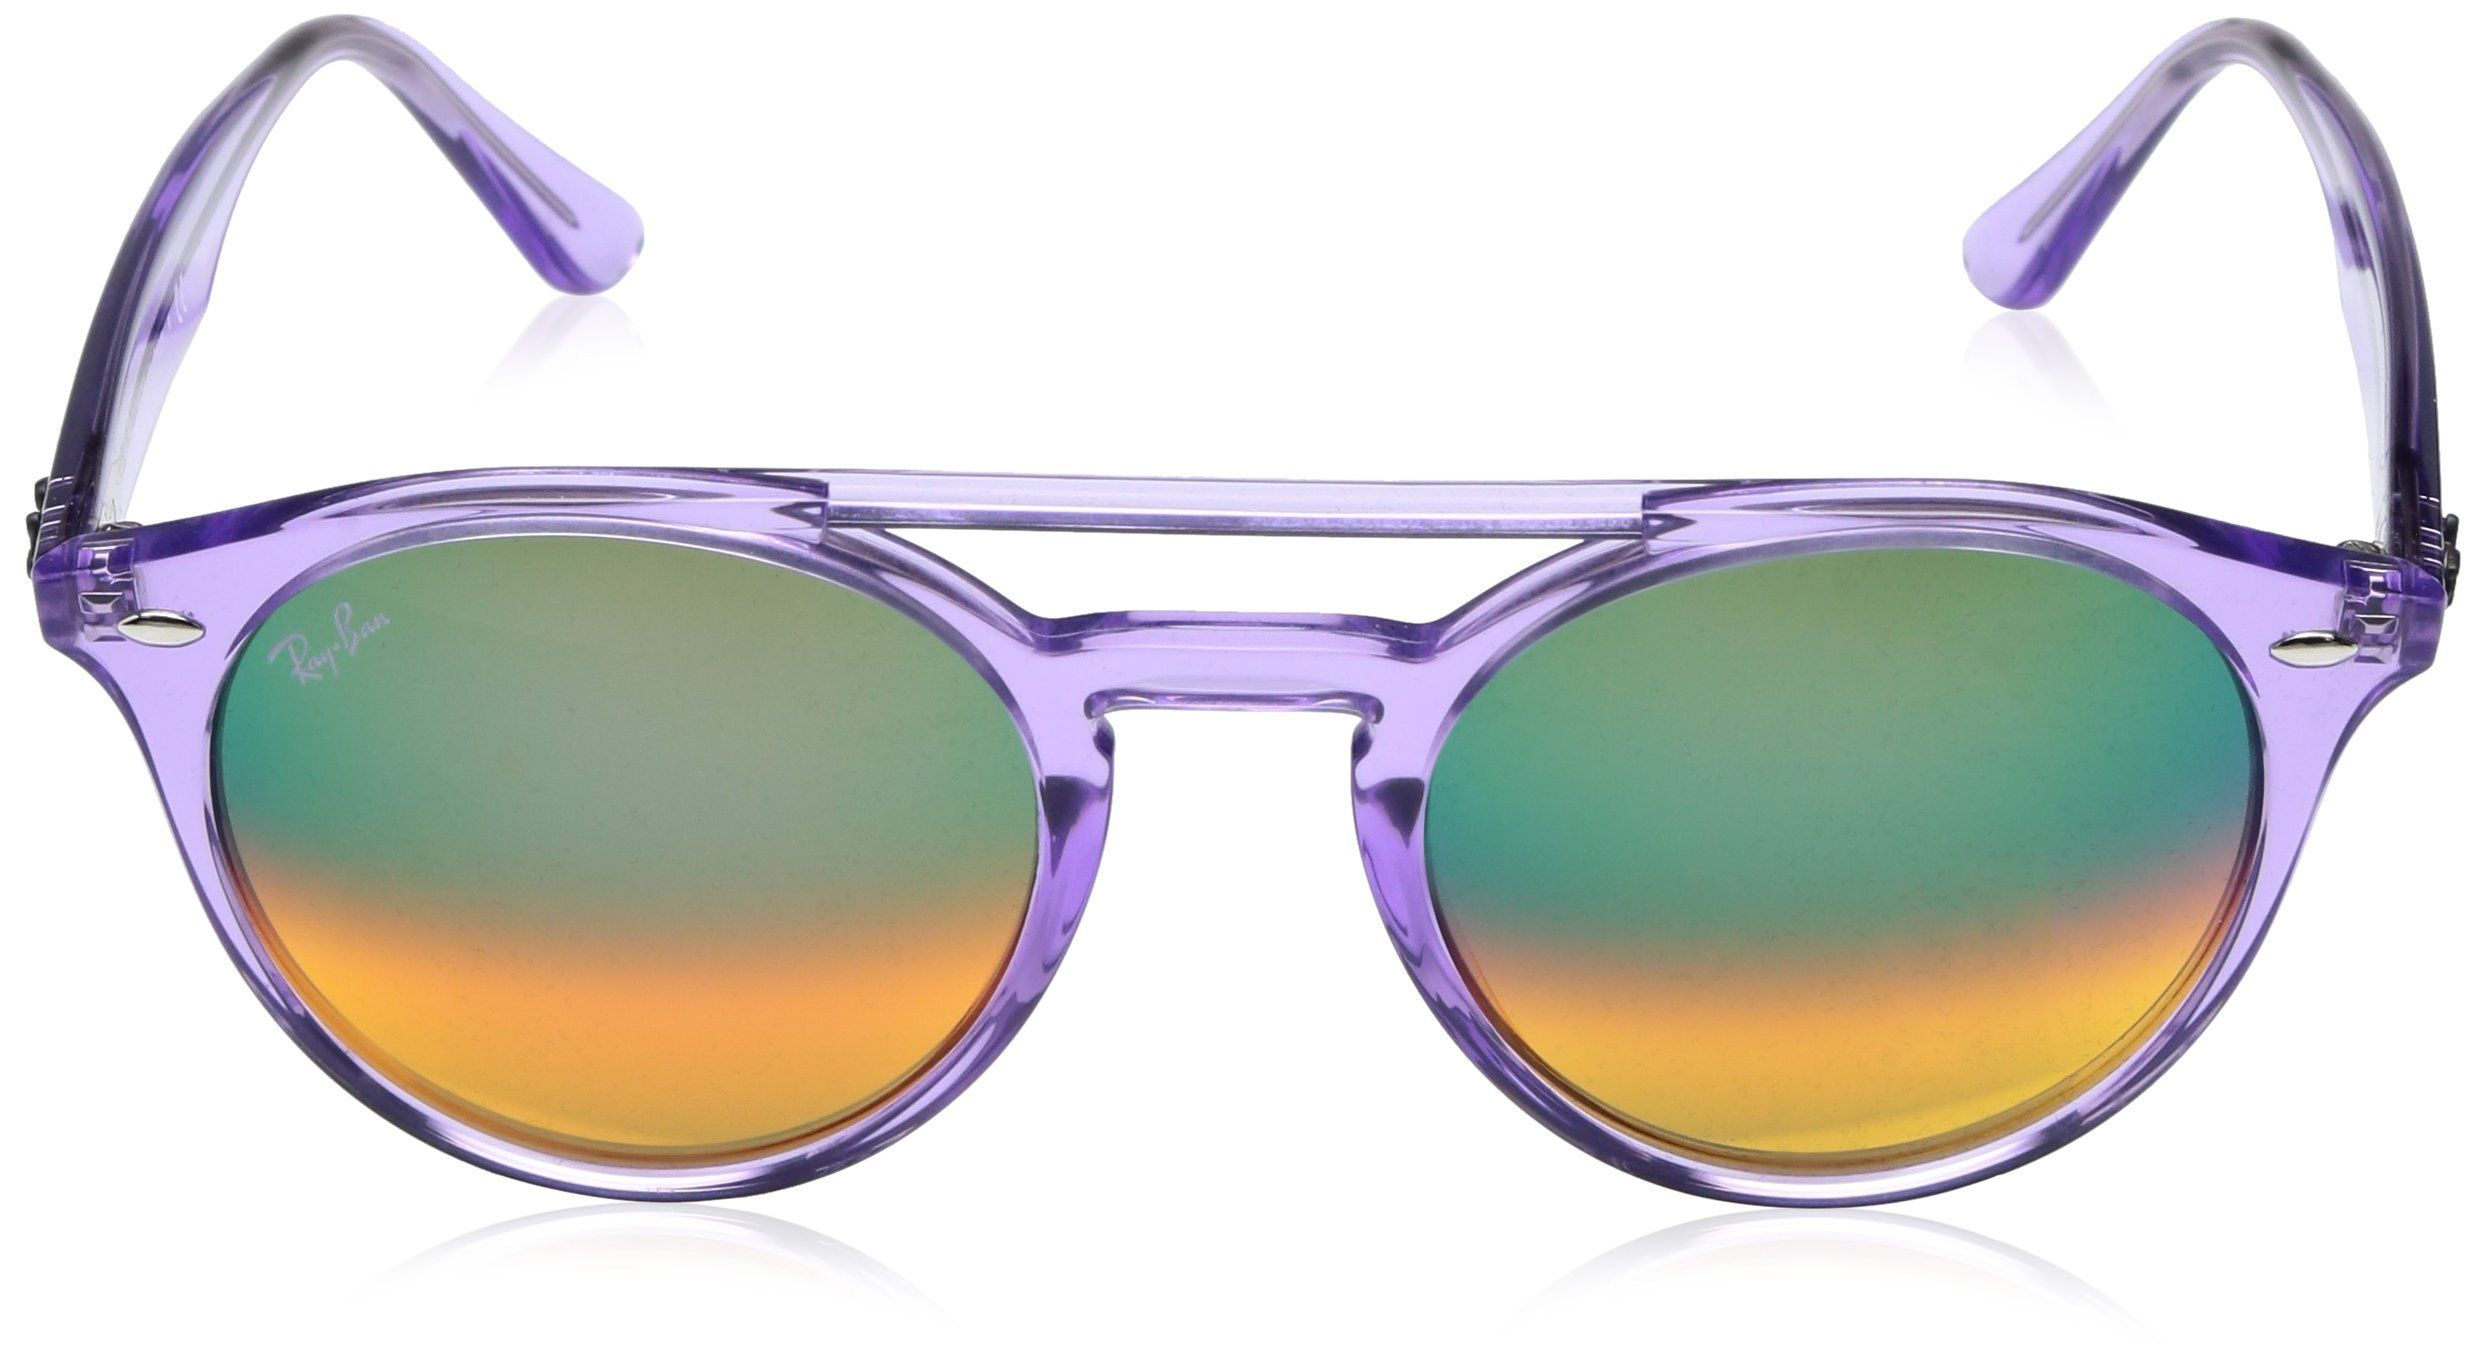 9f93e8a0f1207 RayBan Injected Unisex NonPolarized Iridium Round Sunglasses Violet 51 mm      Read more at